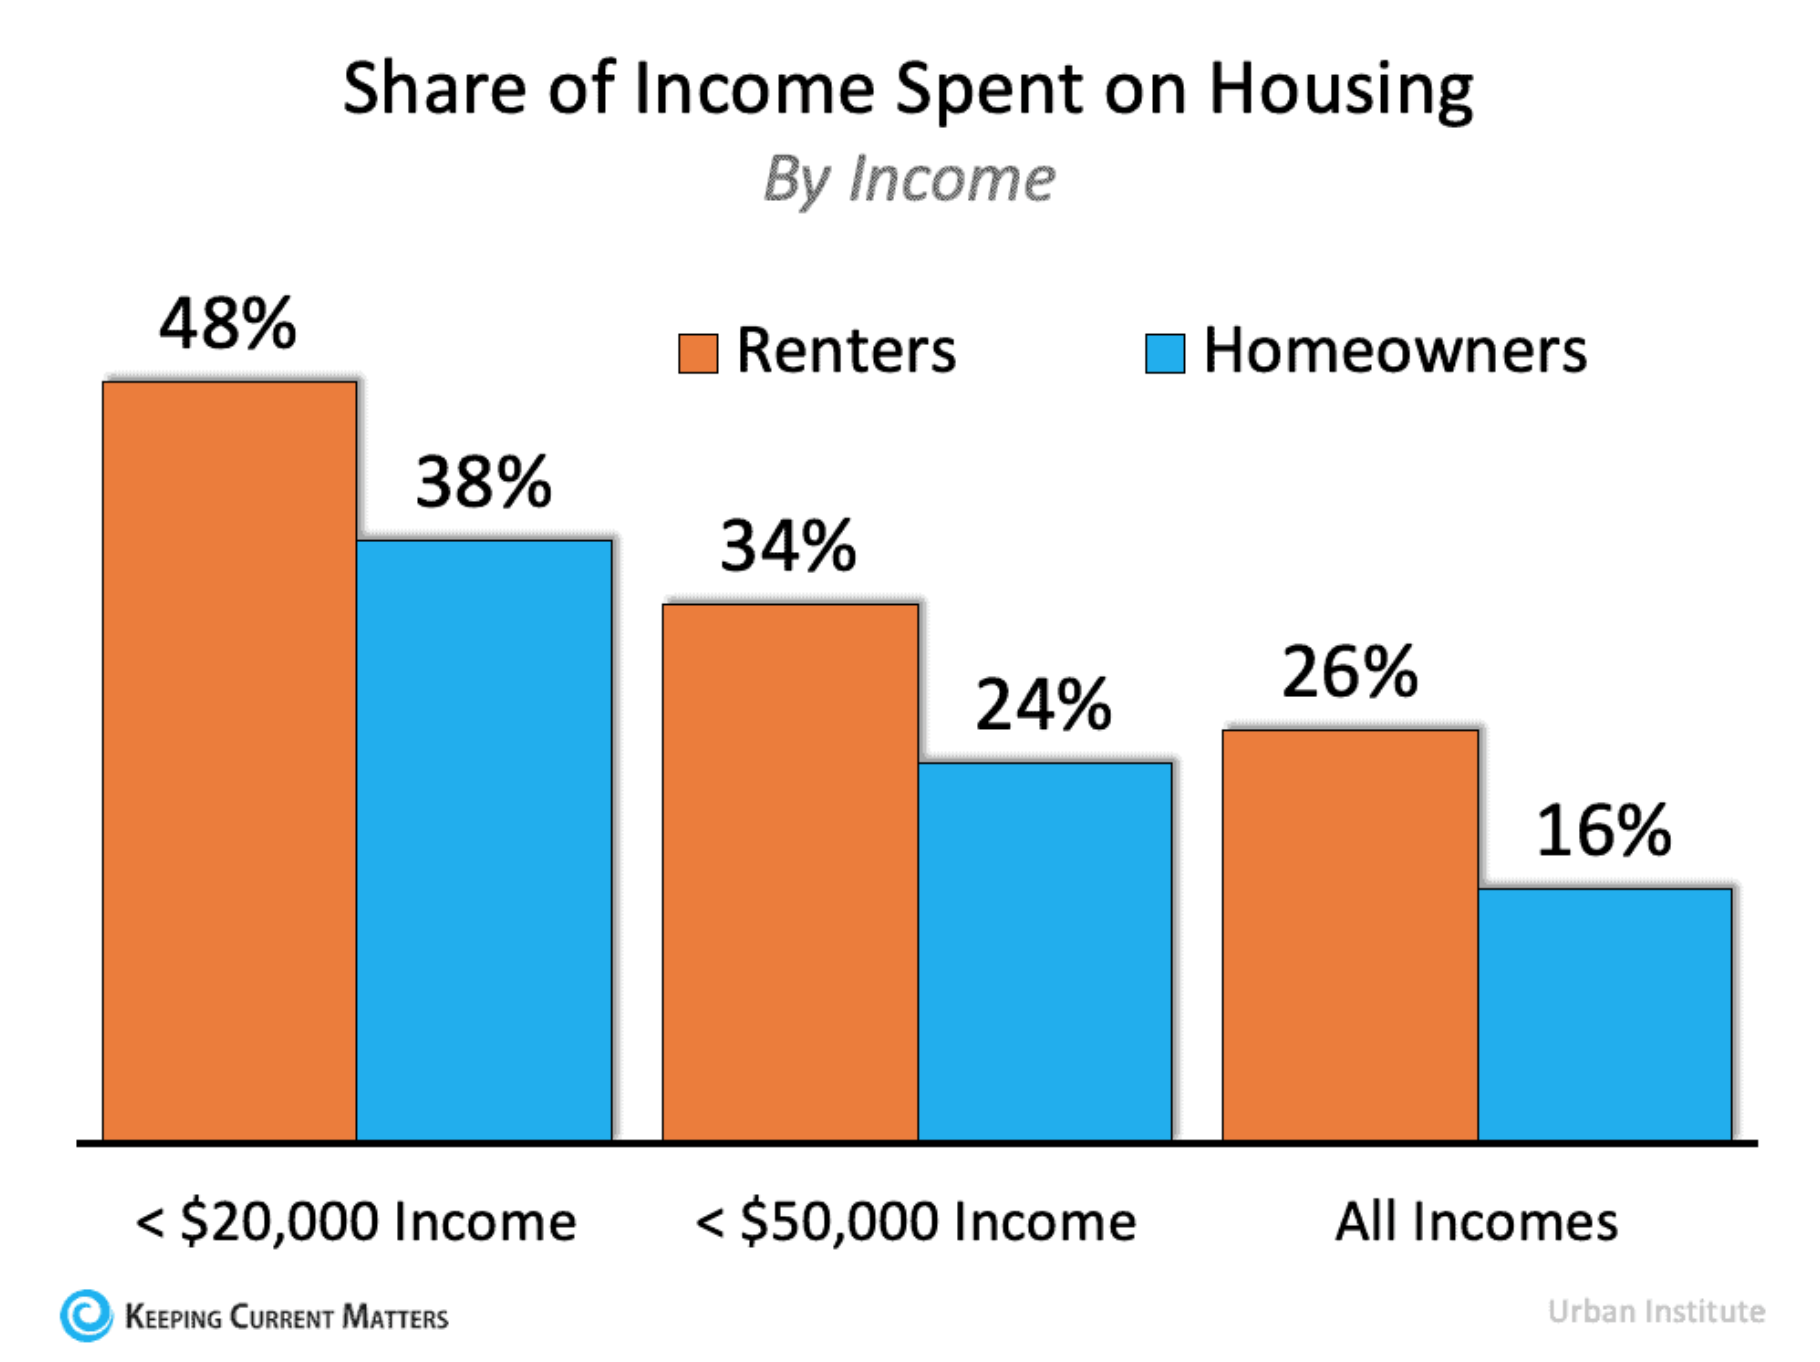 Share of Income Spent on Housing by Renters and Homeowners